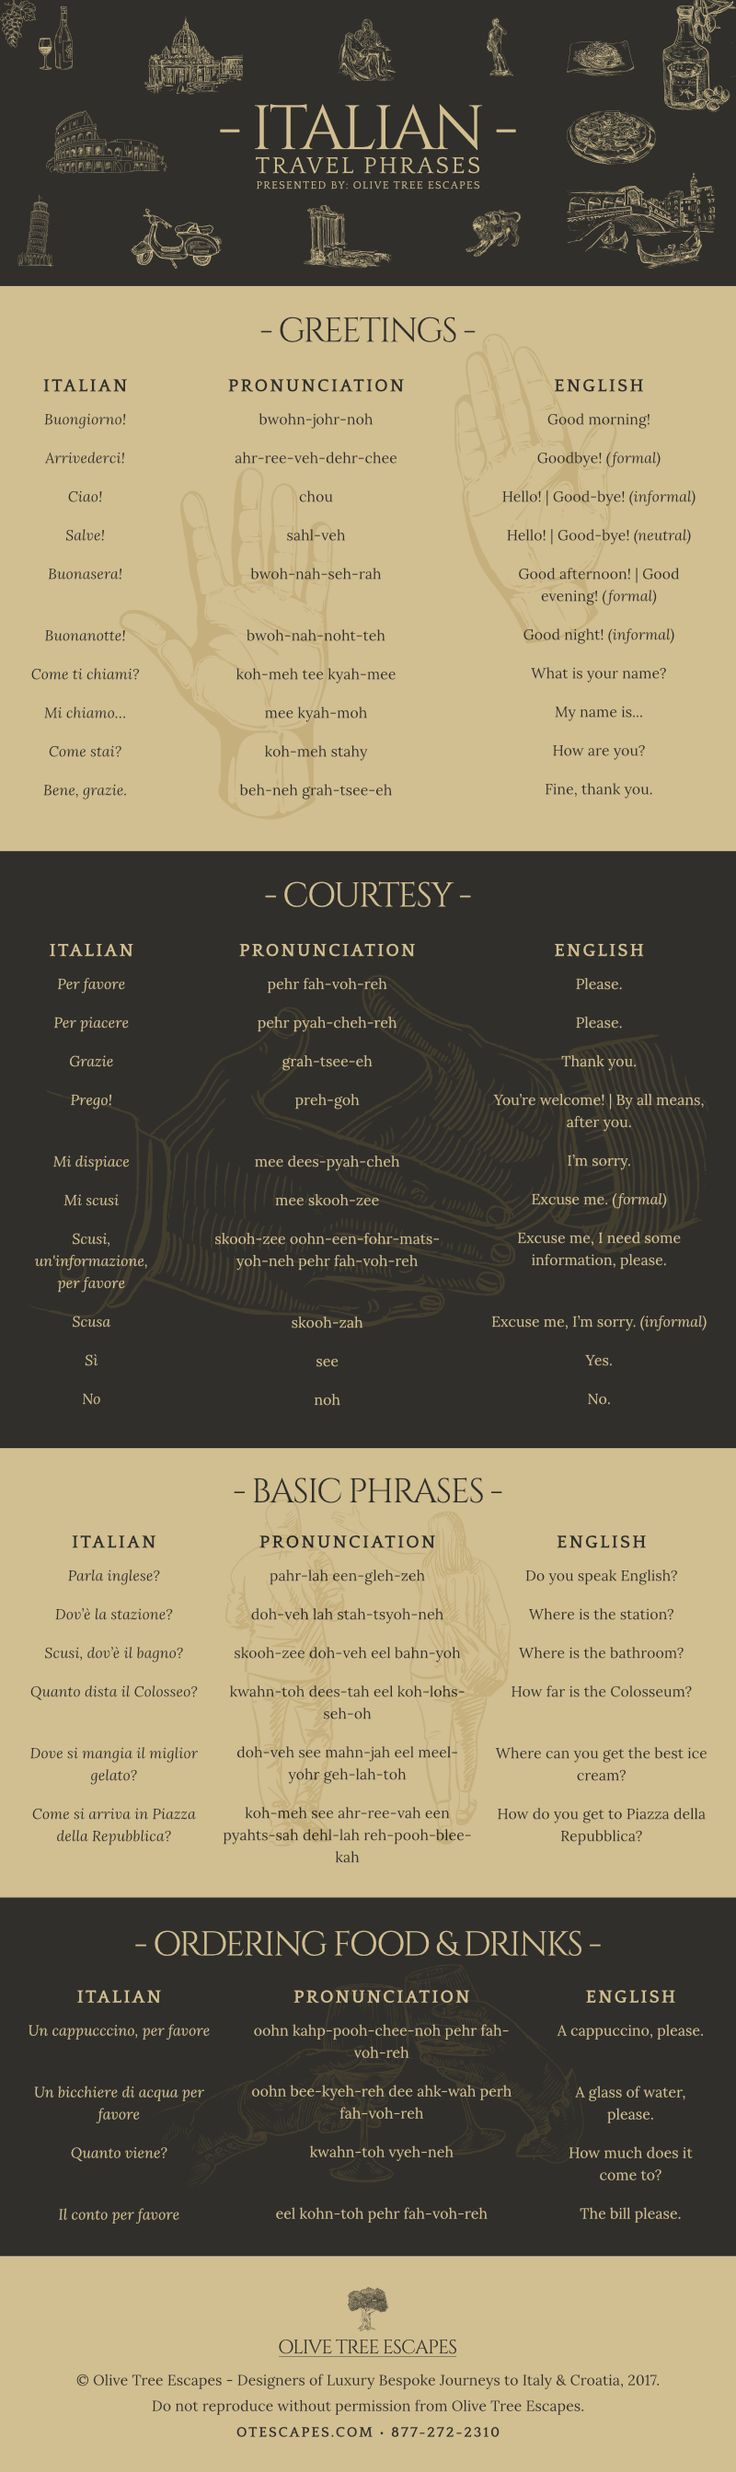 Italian Travel Phrases Infographic | Traveling to #Italy anytime soon? Learn some useful Italian #travel phrases with our #infographic